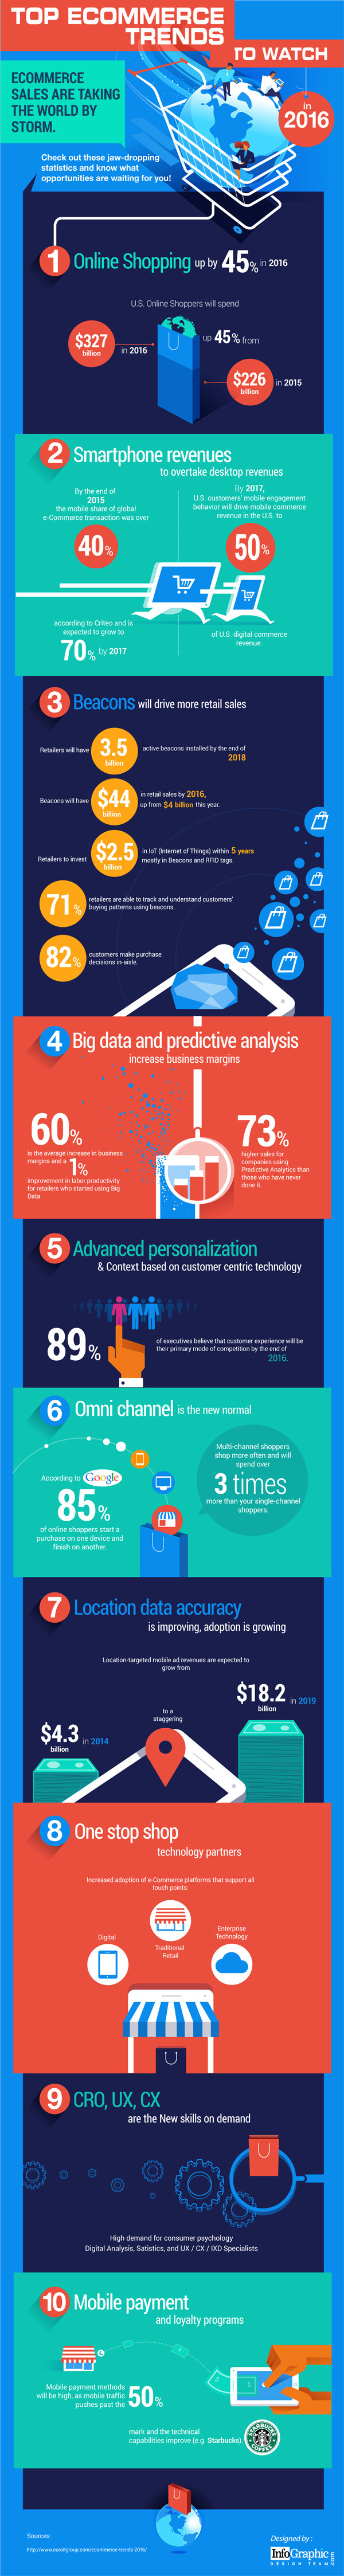 Top E-Commerce Trends to Keep and Eye On [Infographic]